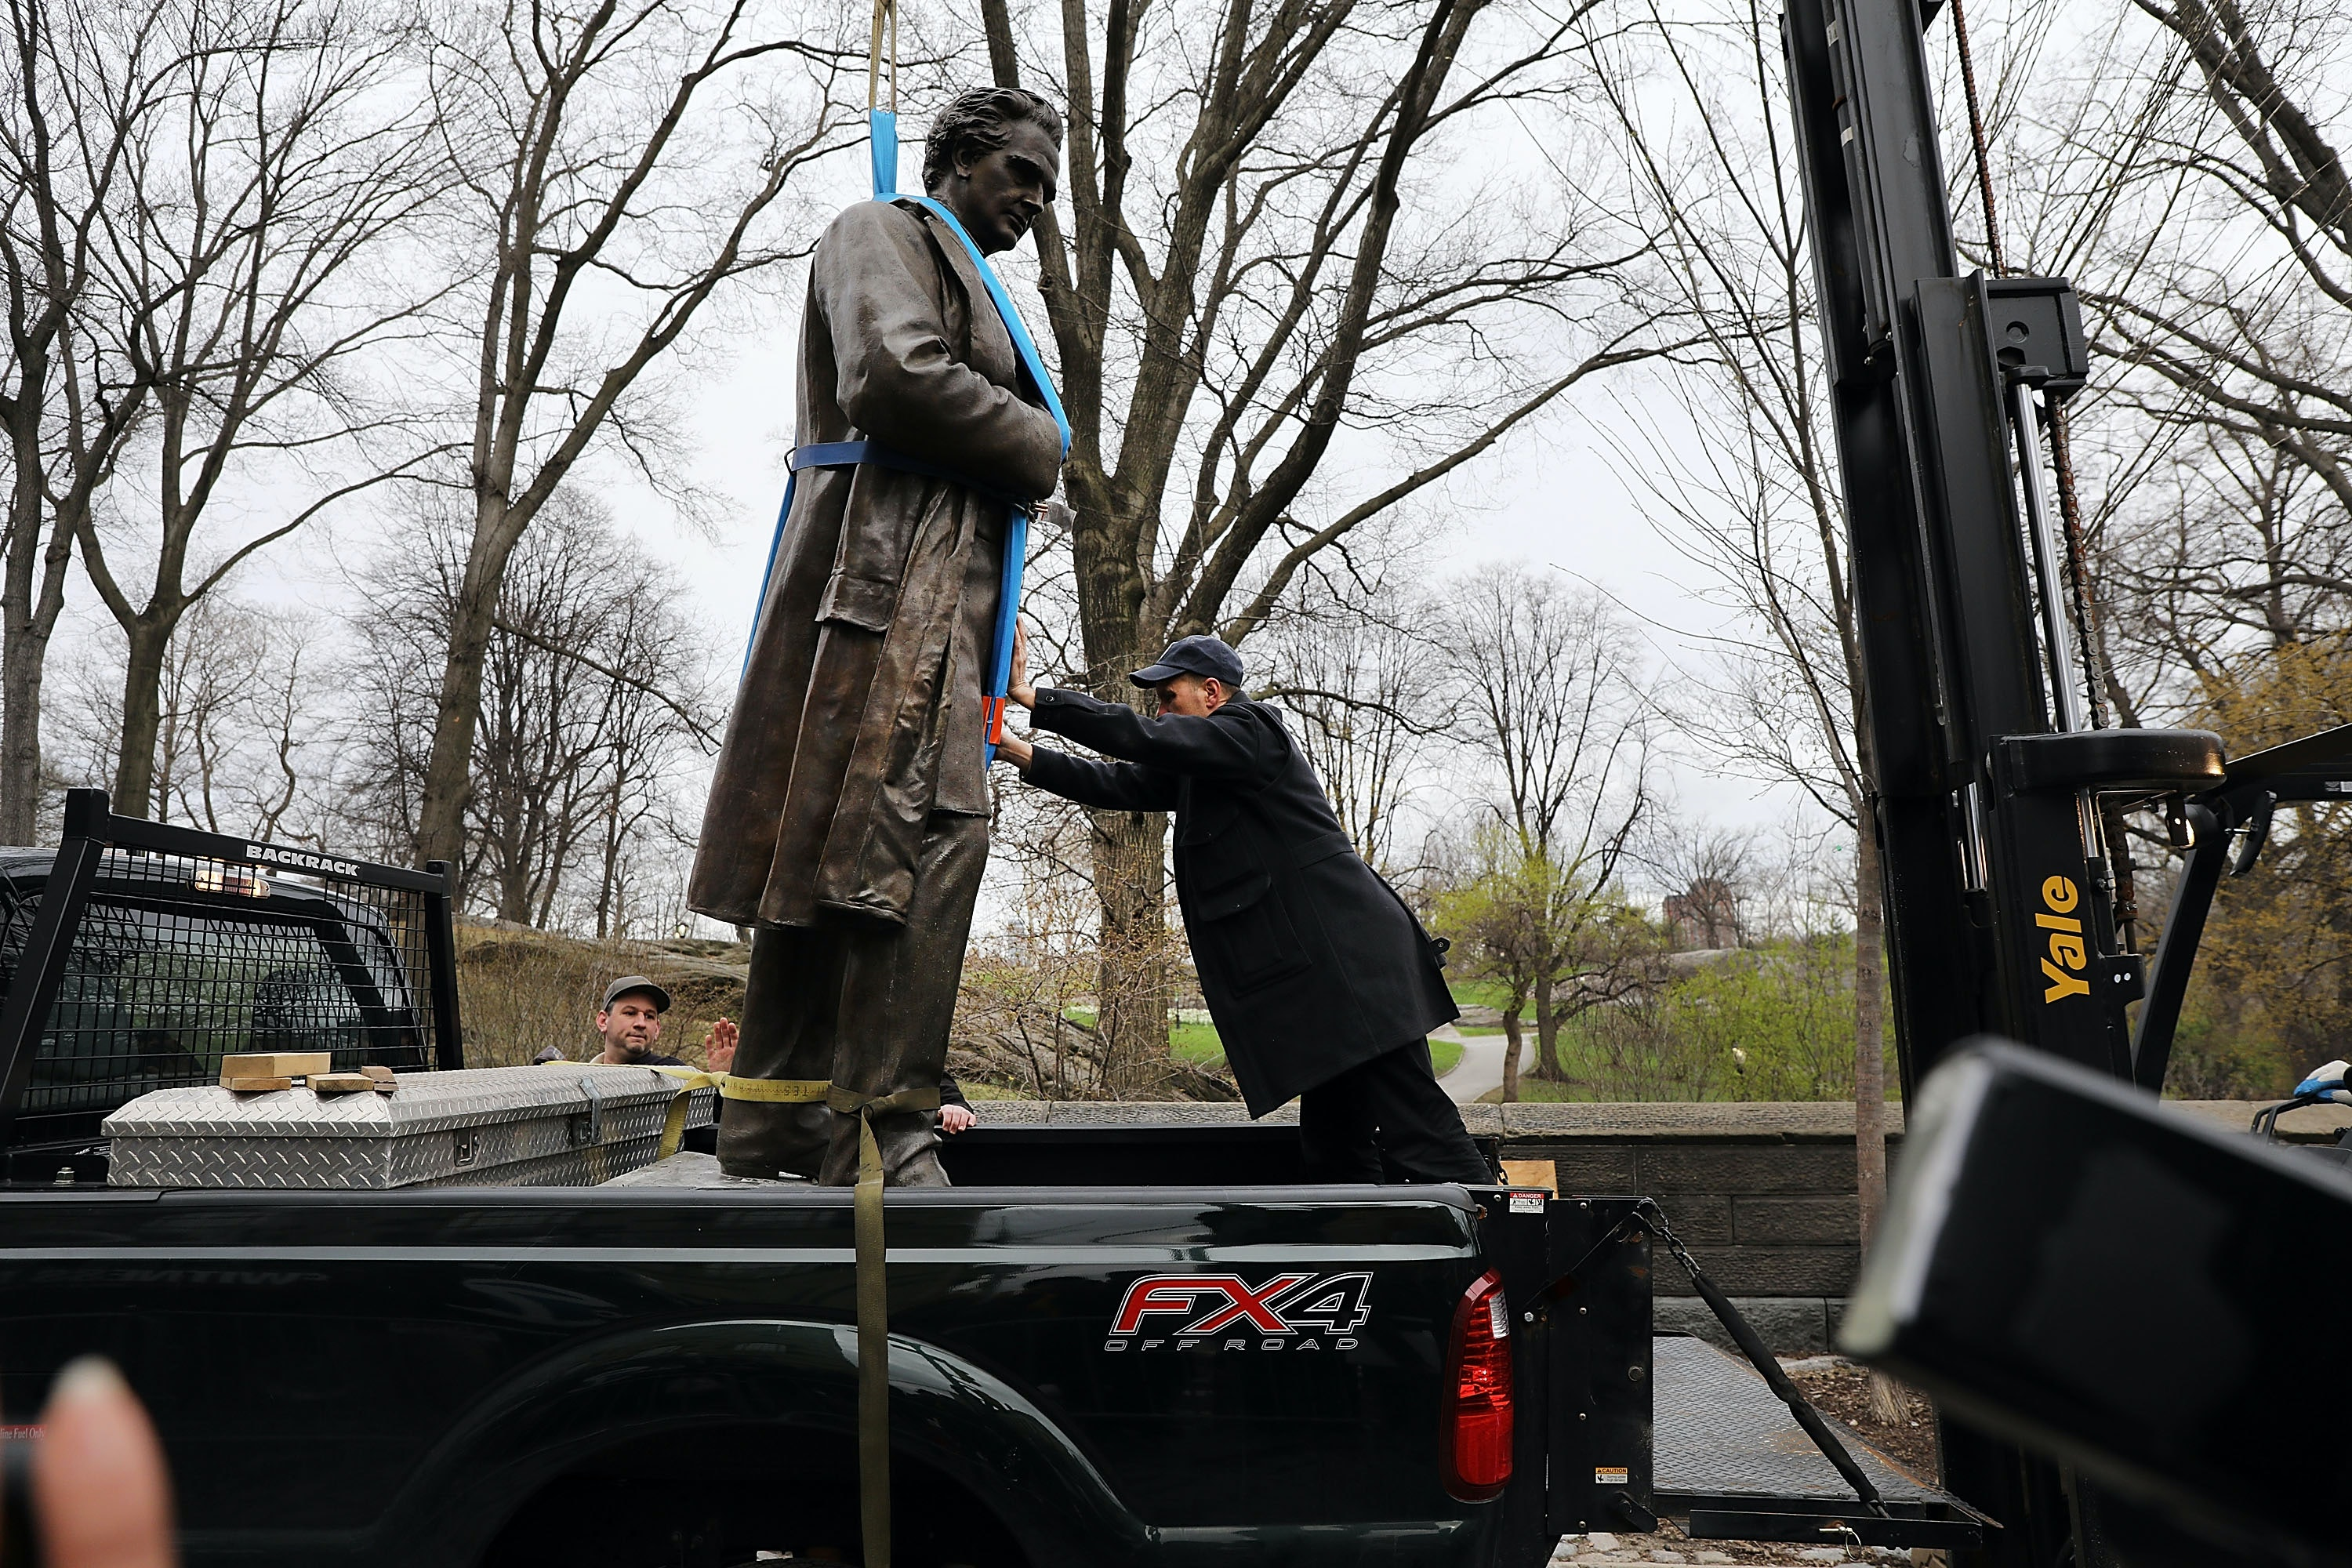 J. Marion Sims' NYC Statue Will Be Moved To Another Neighborhood, & Here's Why Activists Aren't Happy About It